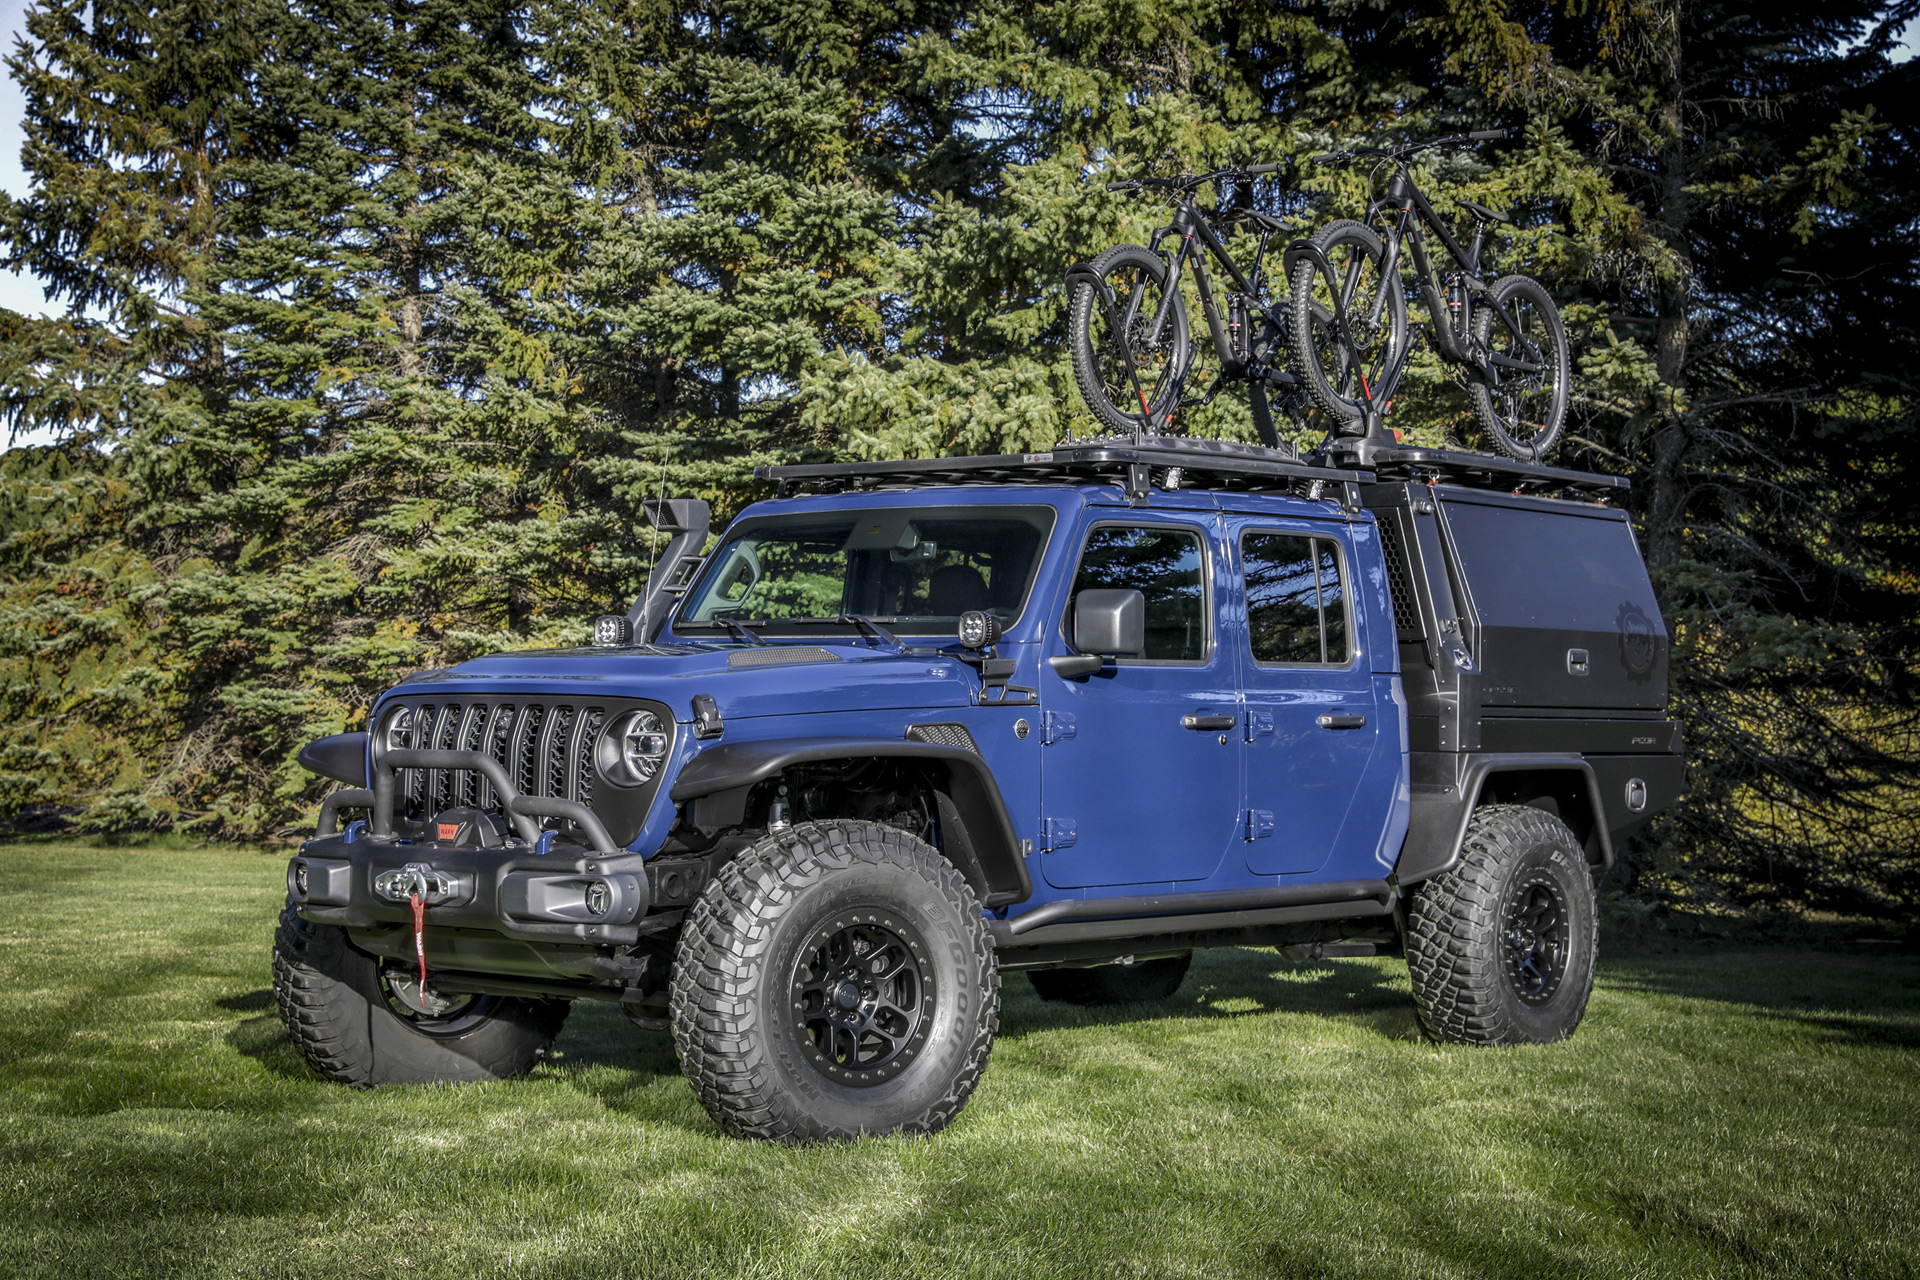 Jeep Gladiator Top Dog Concept is a vehicle for all kinds of activities